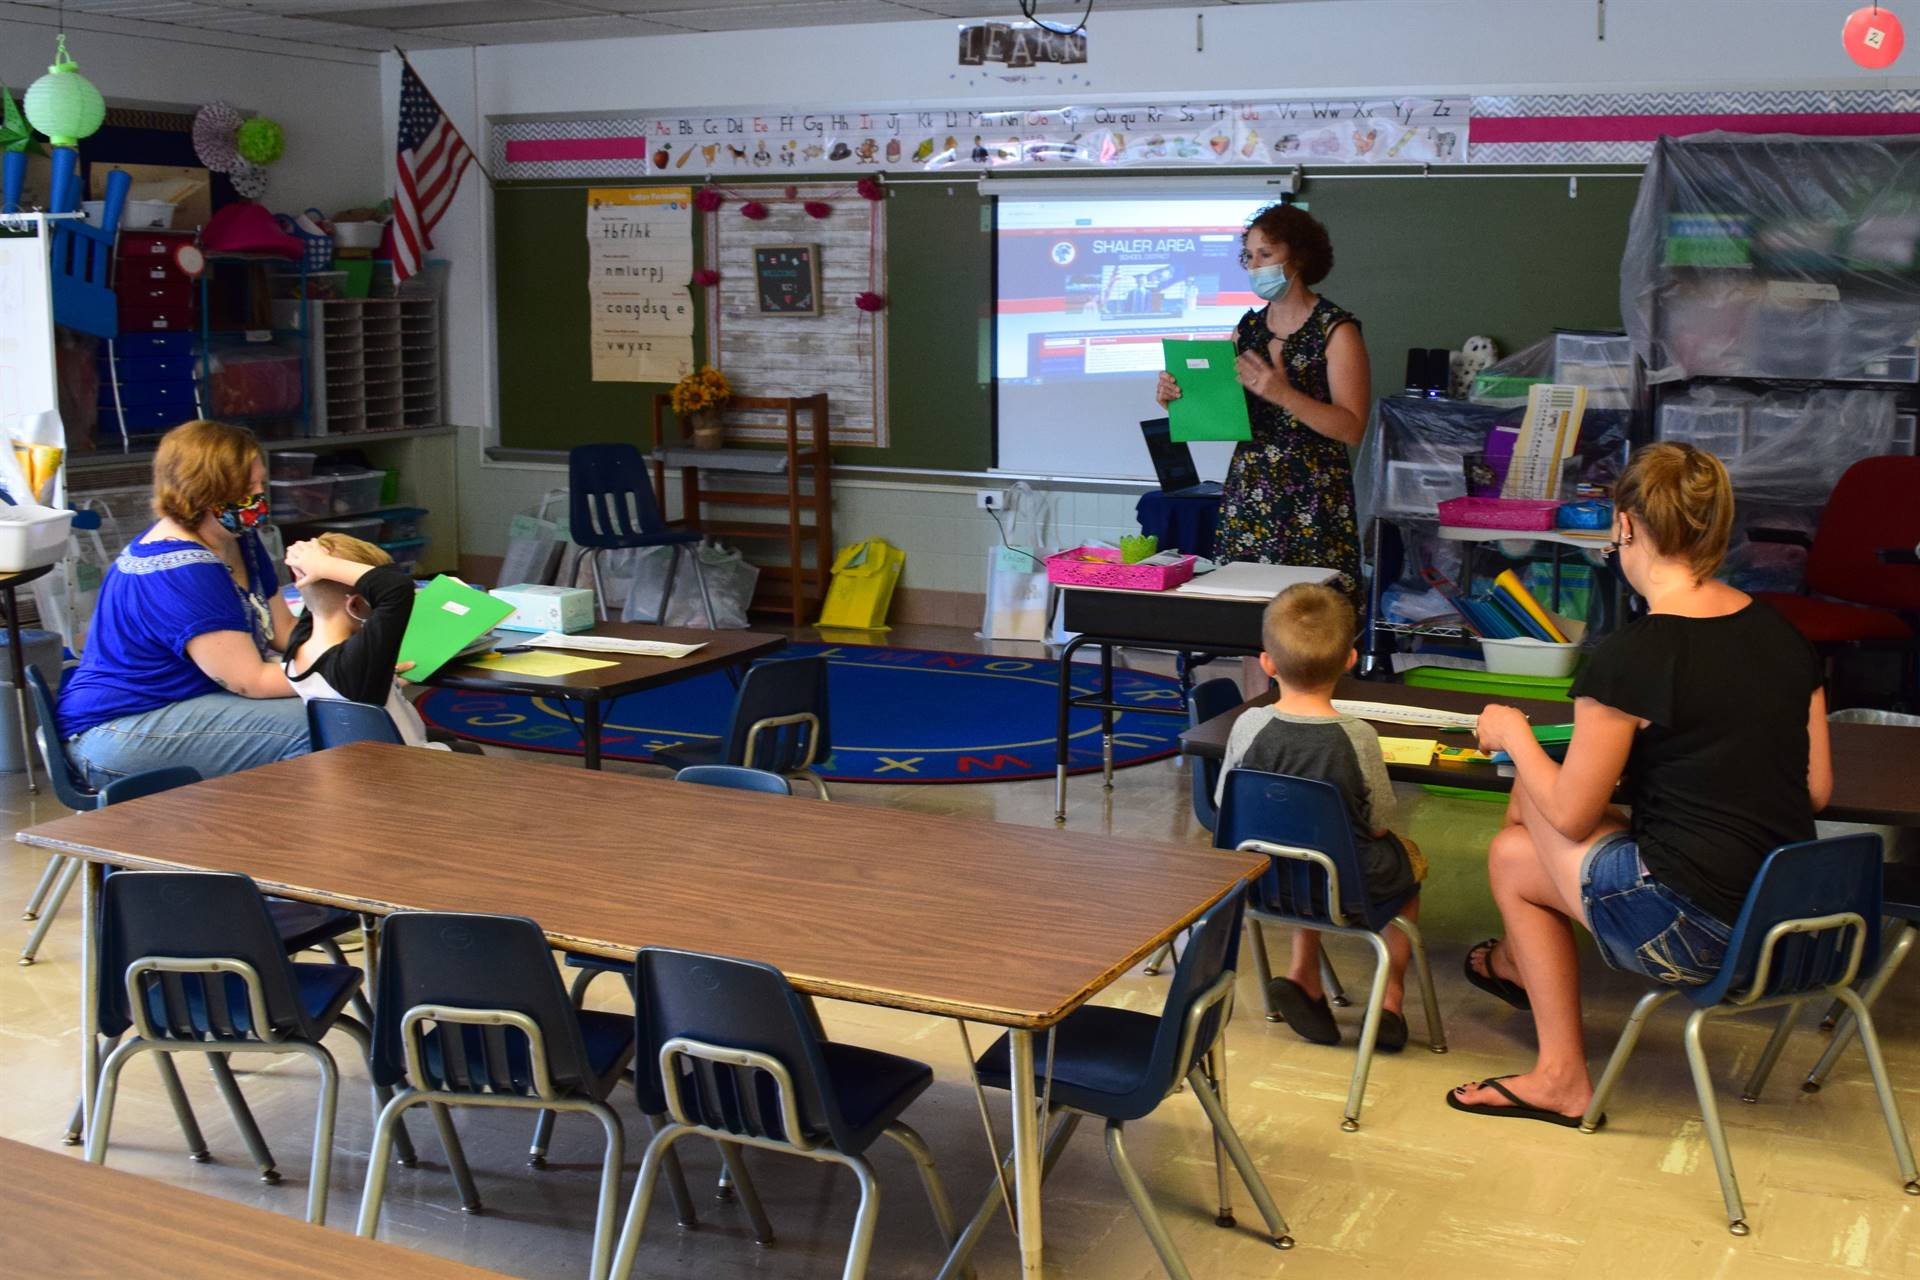 kindergarten students in class for first day of in-person learning